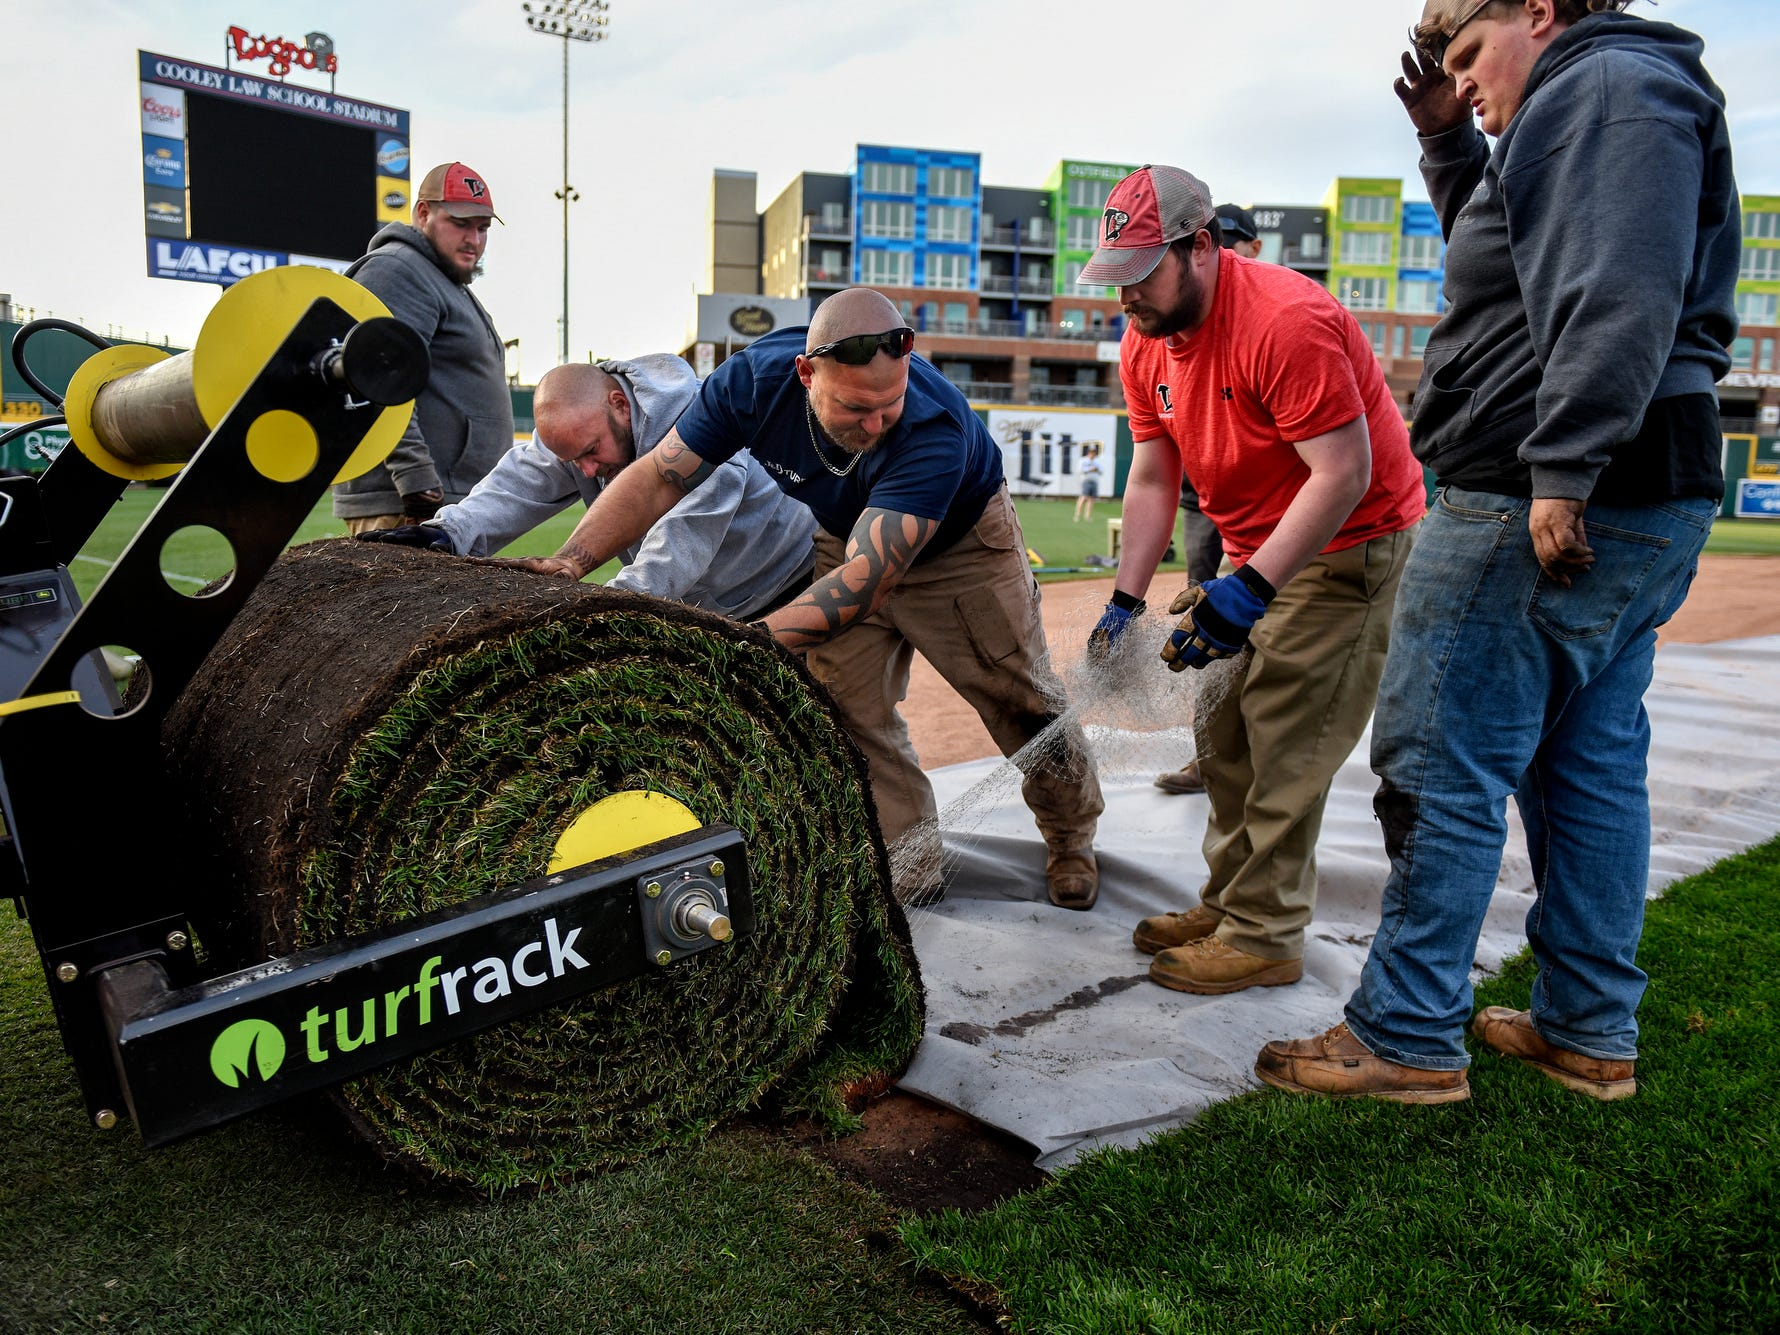 A crew carefully unrolls a spool of sod with assistance from a tractor while workers turnover the Lugnuts baseball field for a Lansing Ignite soccer match on Wednesday, April 24, 2019, at Cooley Law School Stadium in Lansing.